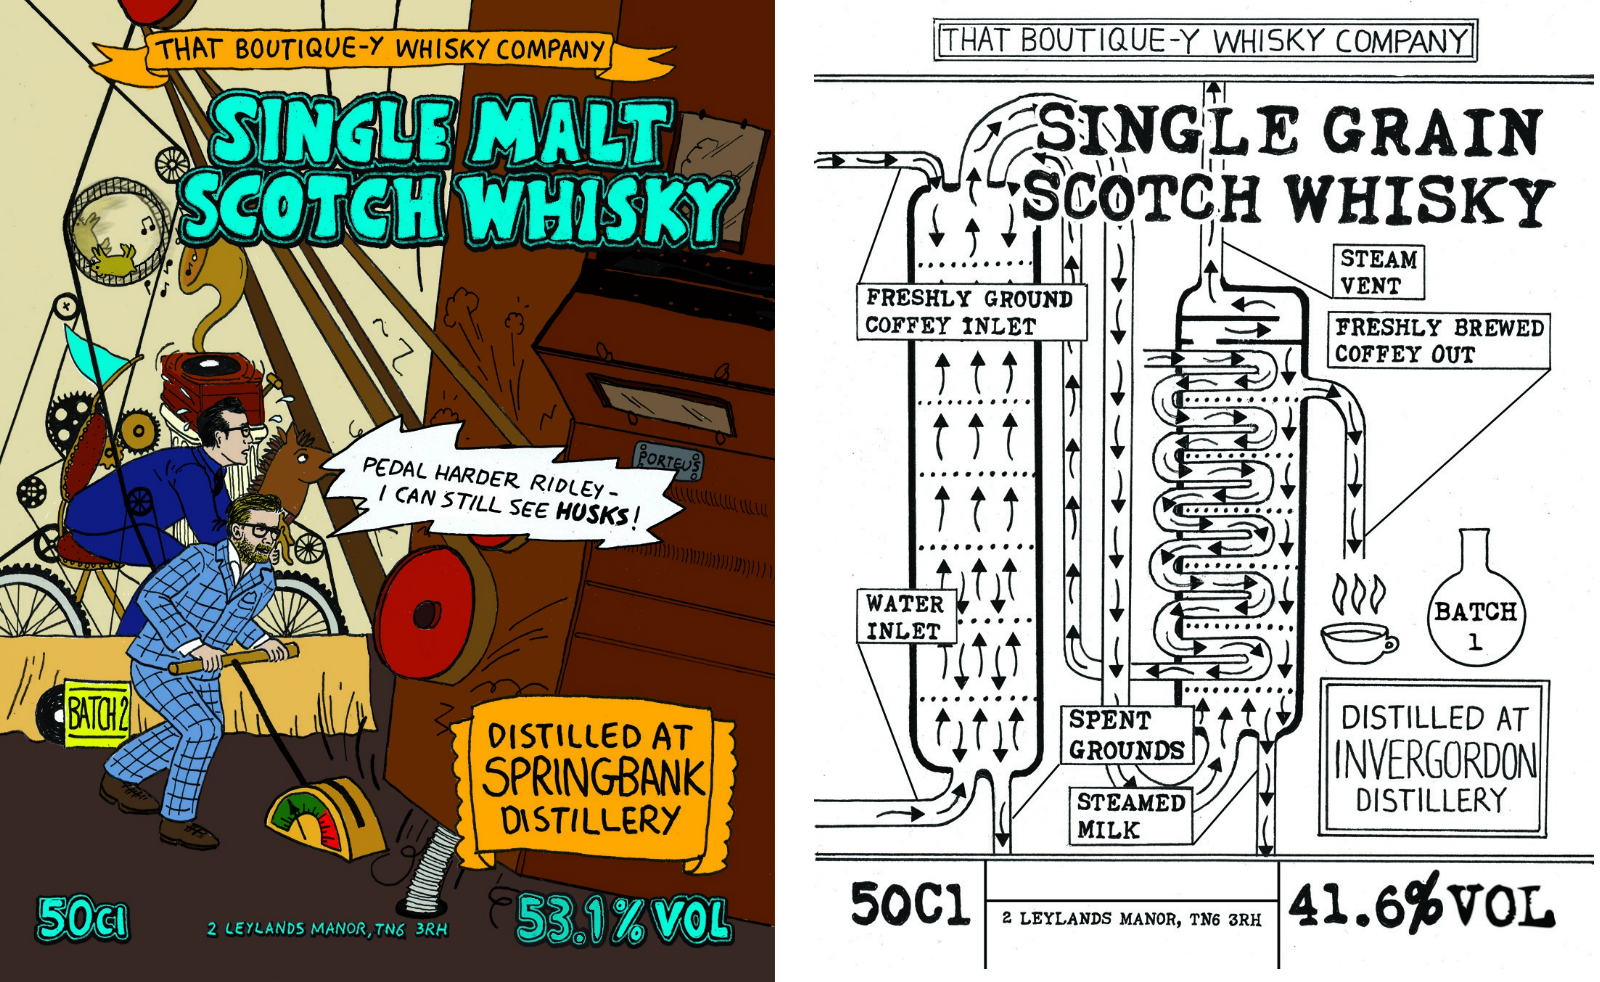 That Boutique-y Whisky Co Master of Malt